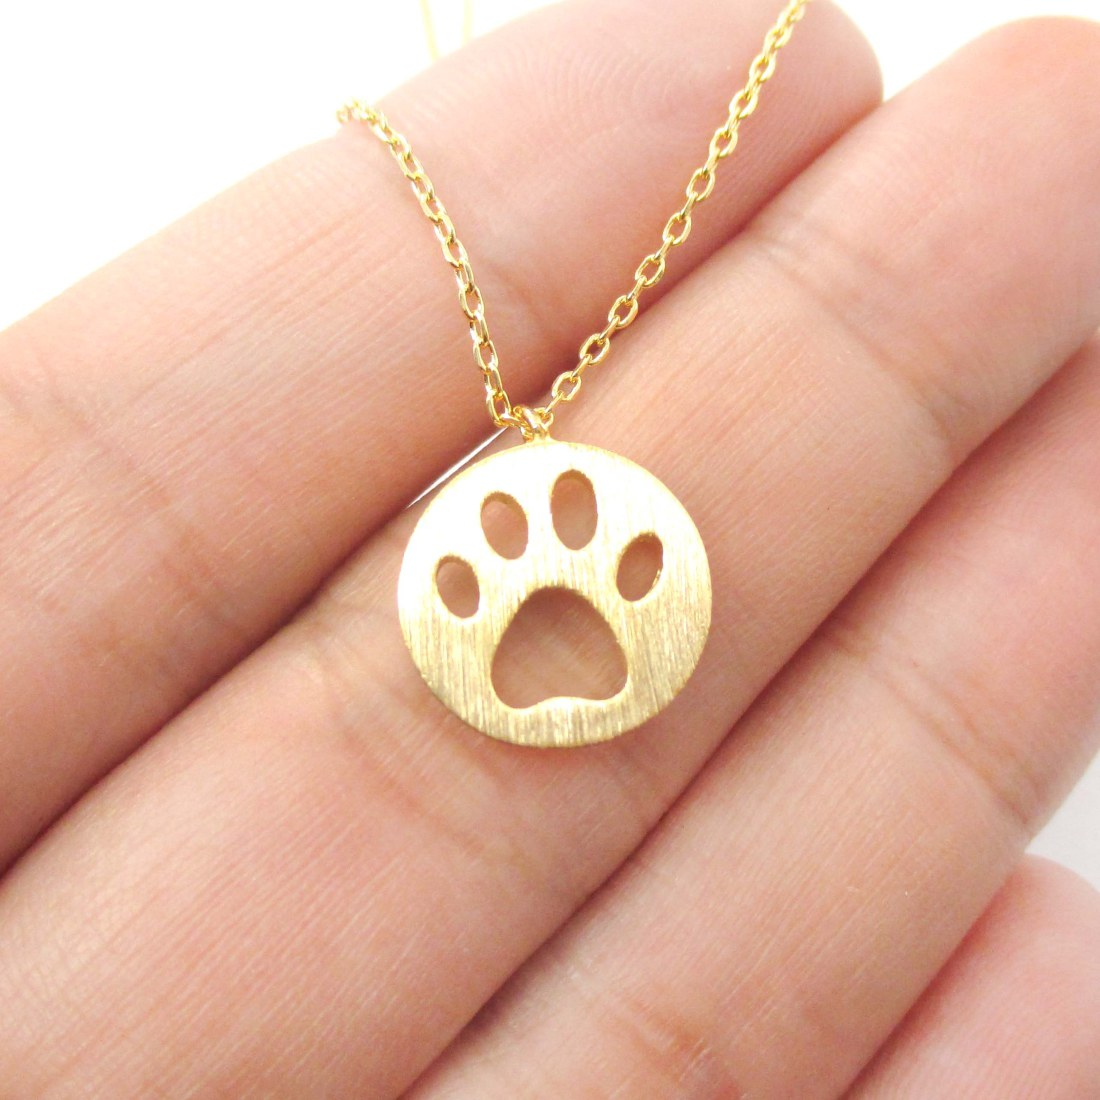 product com necklace bypoppy print by paw original notonthehighstreet poppy